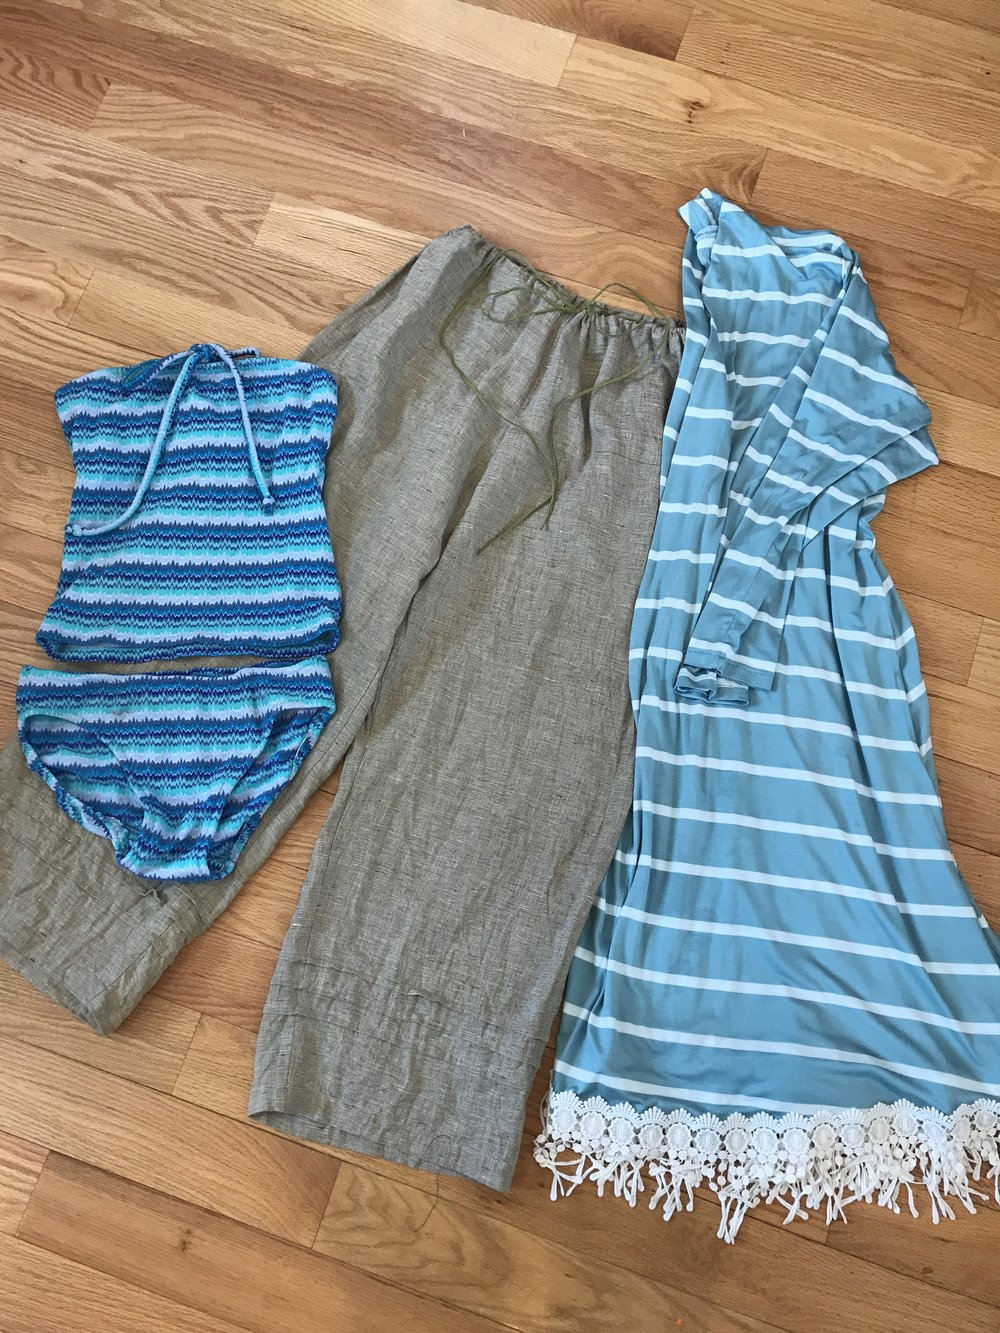 Sewing a Spring Break Capsule Wardrobe with Christine Jonson Patterns | Wide leg linen pants, tankini, long swing cardigan